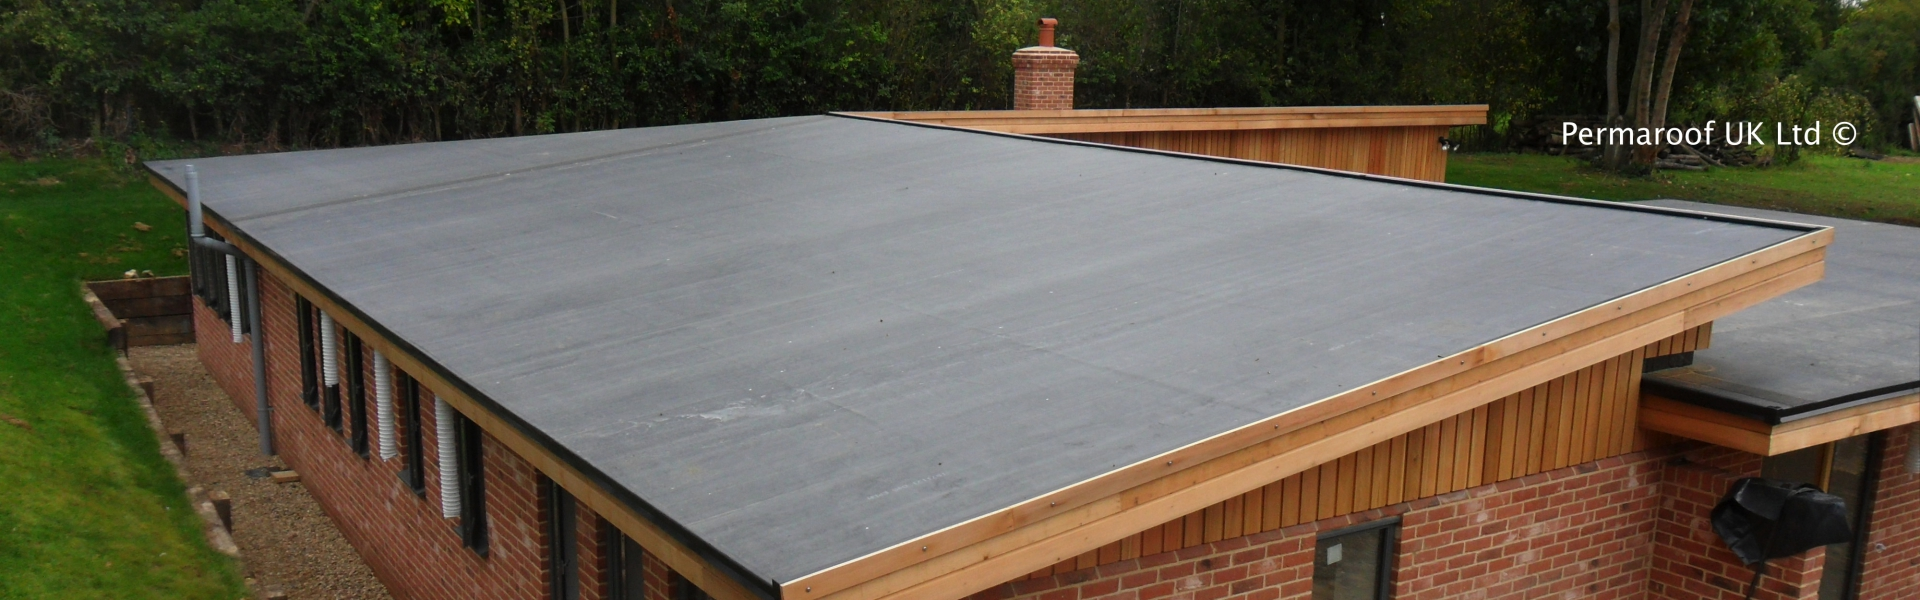 New Build Low Sloped Roof Permaroof